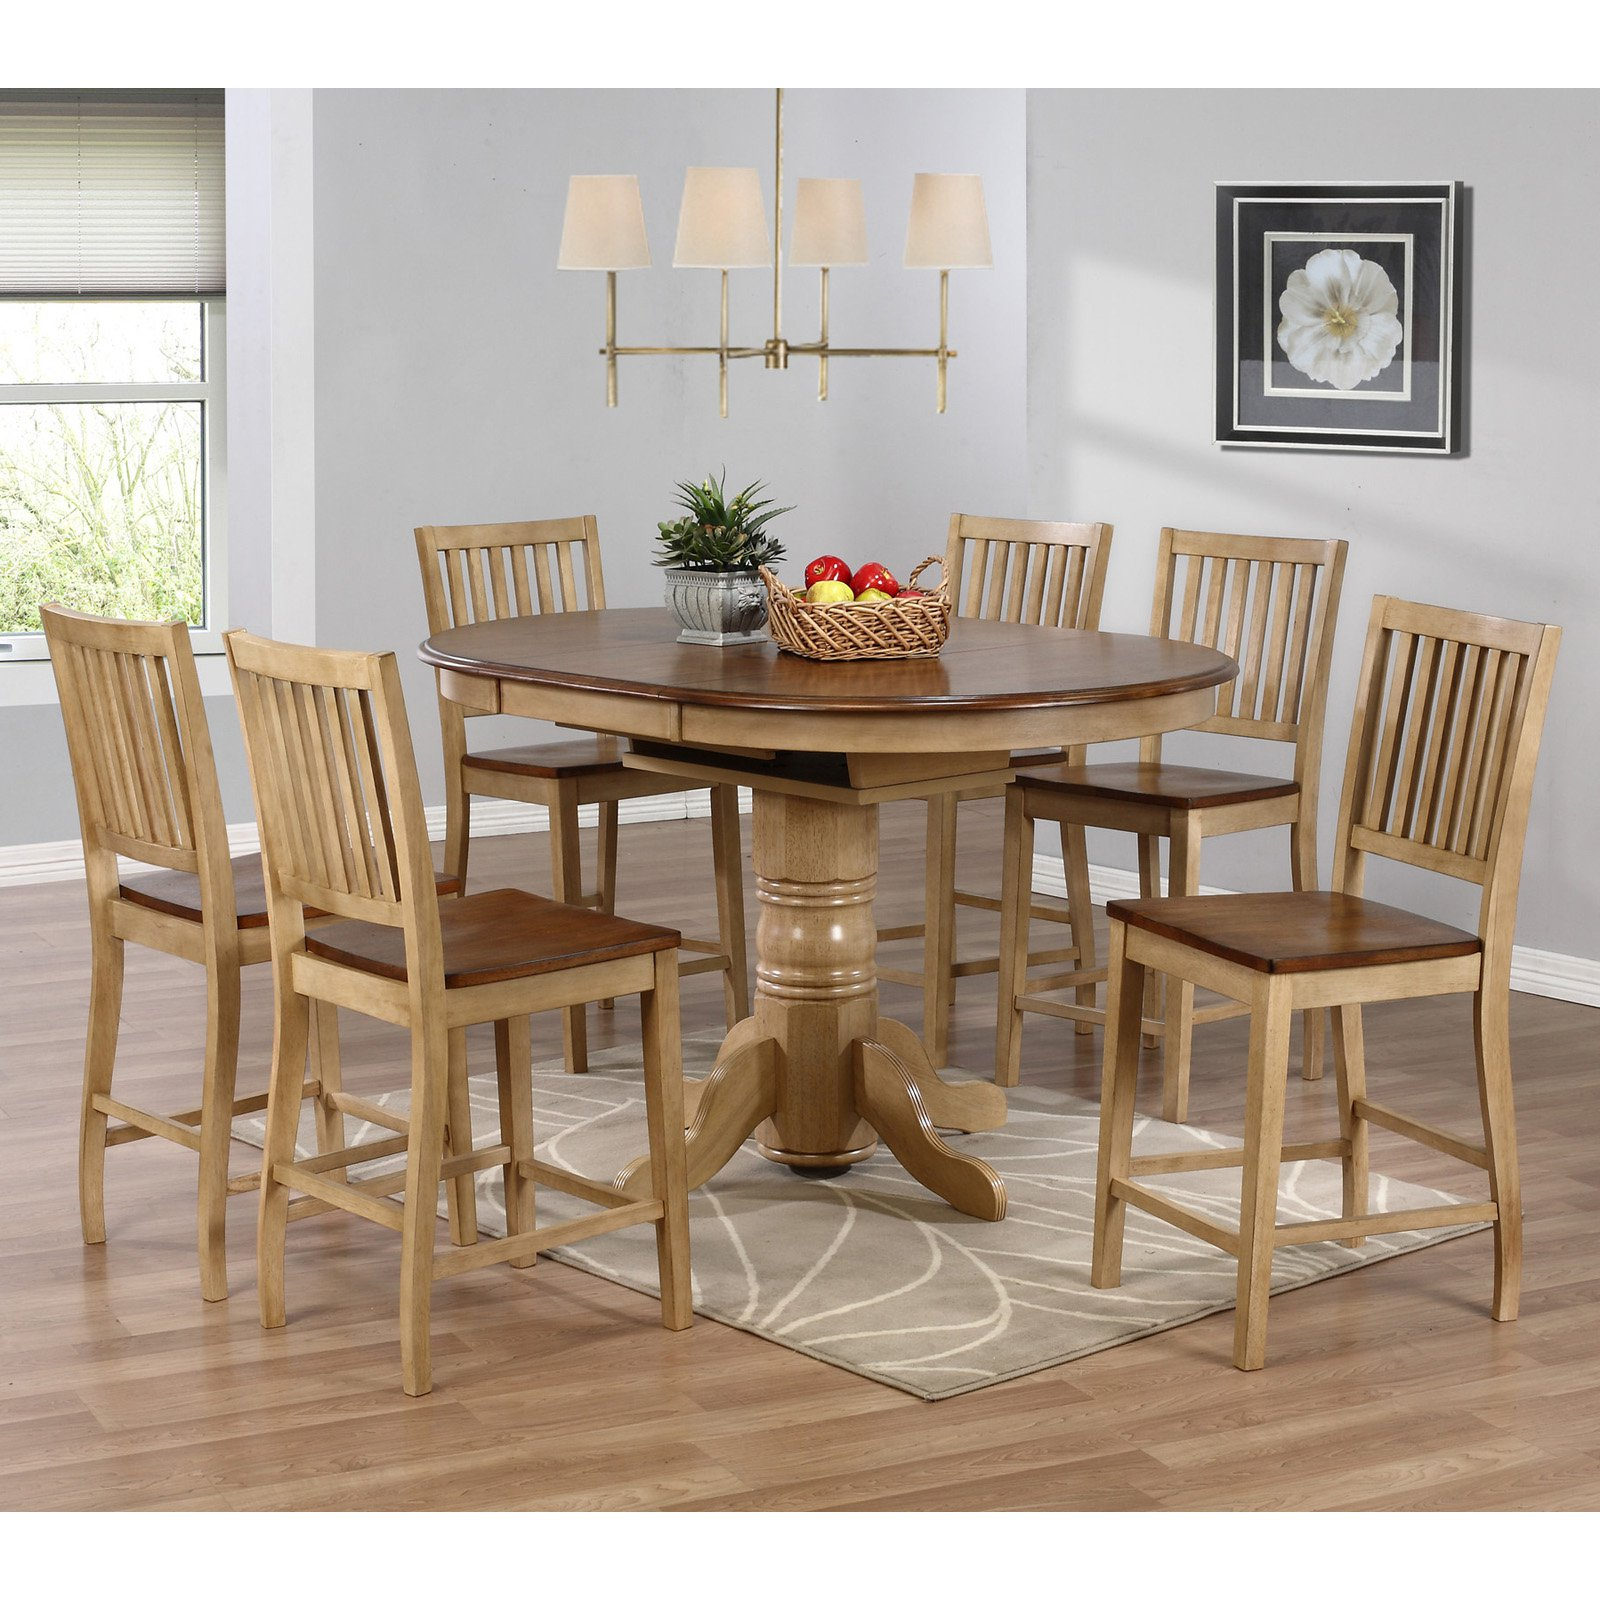 sunset trading brookdale 7 piece oval counter height table set with brookdale stools